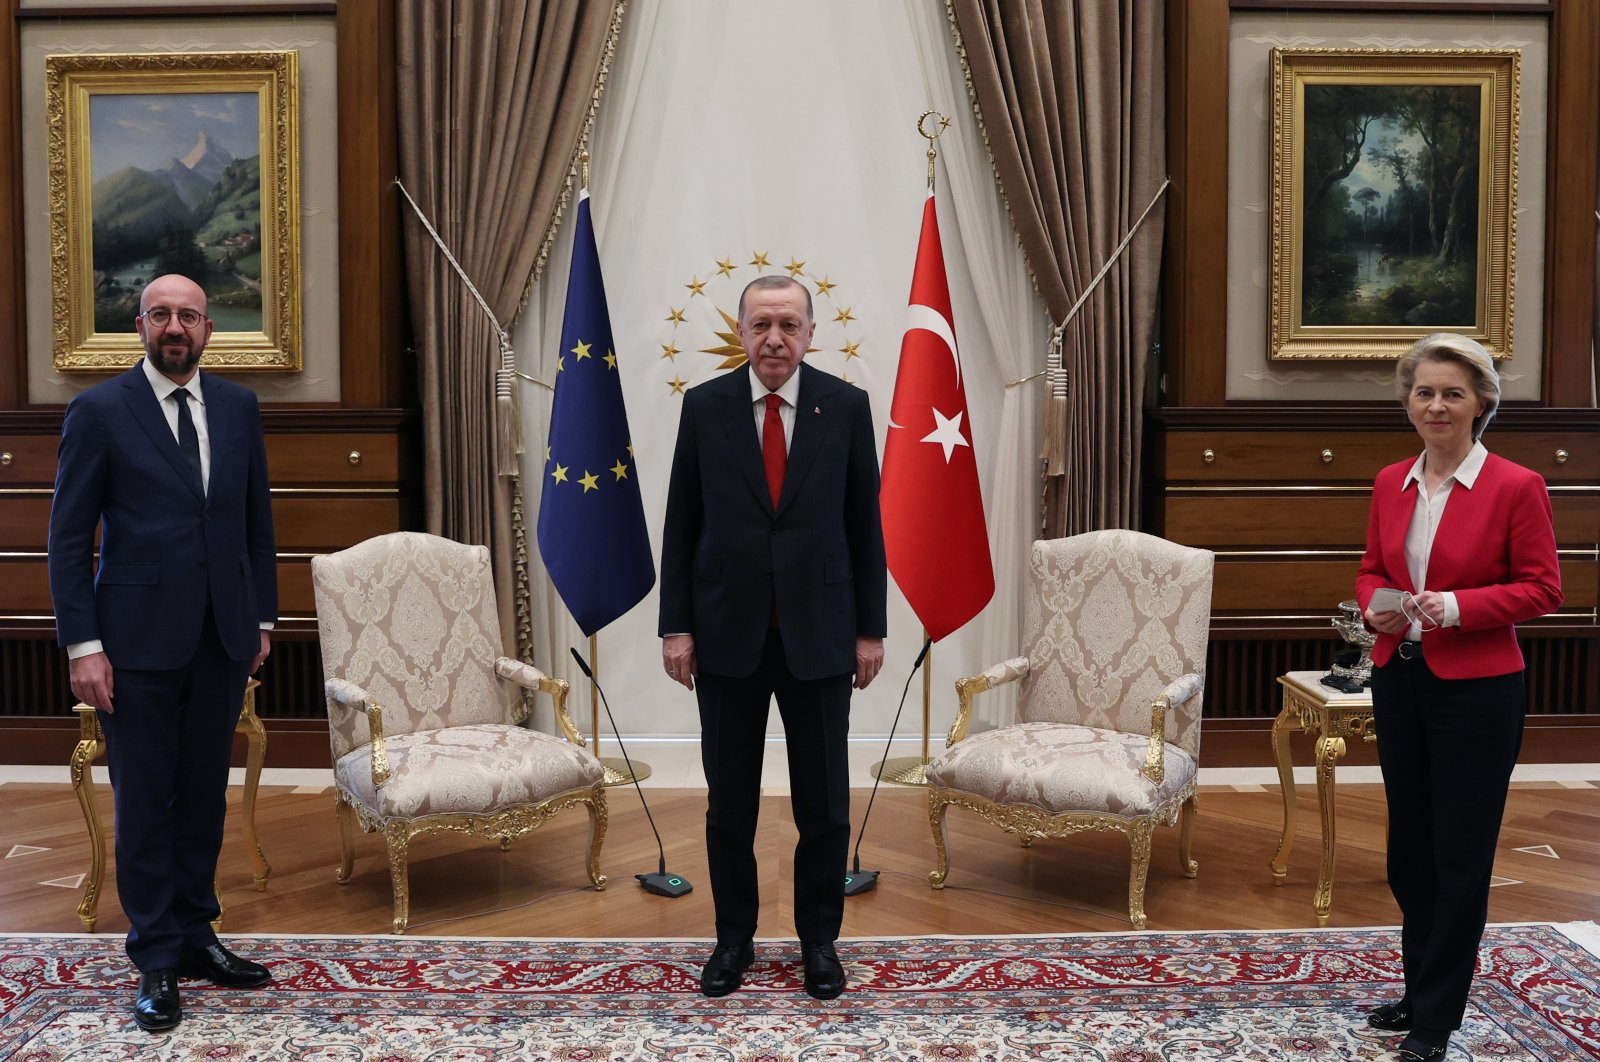 President Recep Tayyip Erdoğan (C) poses with Charles Michel (L), head of the European Council and Ursula von der Leyen, head of the European Commission, at the Presidential Complex in Ankara, Turkey, April 7, 2021. (IHA Photo)